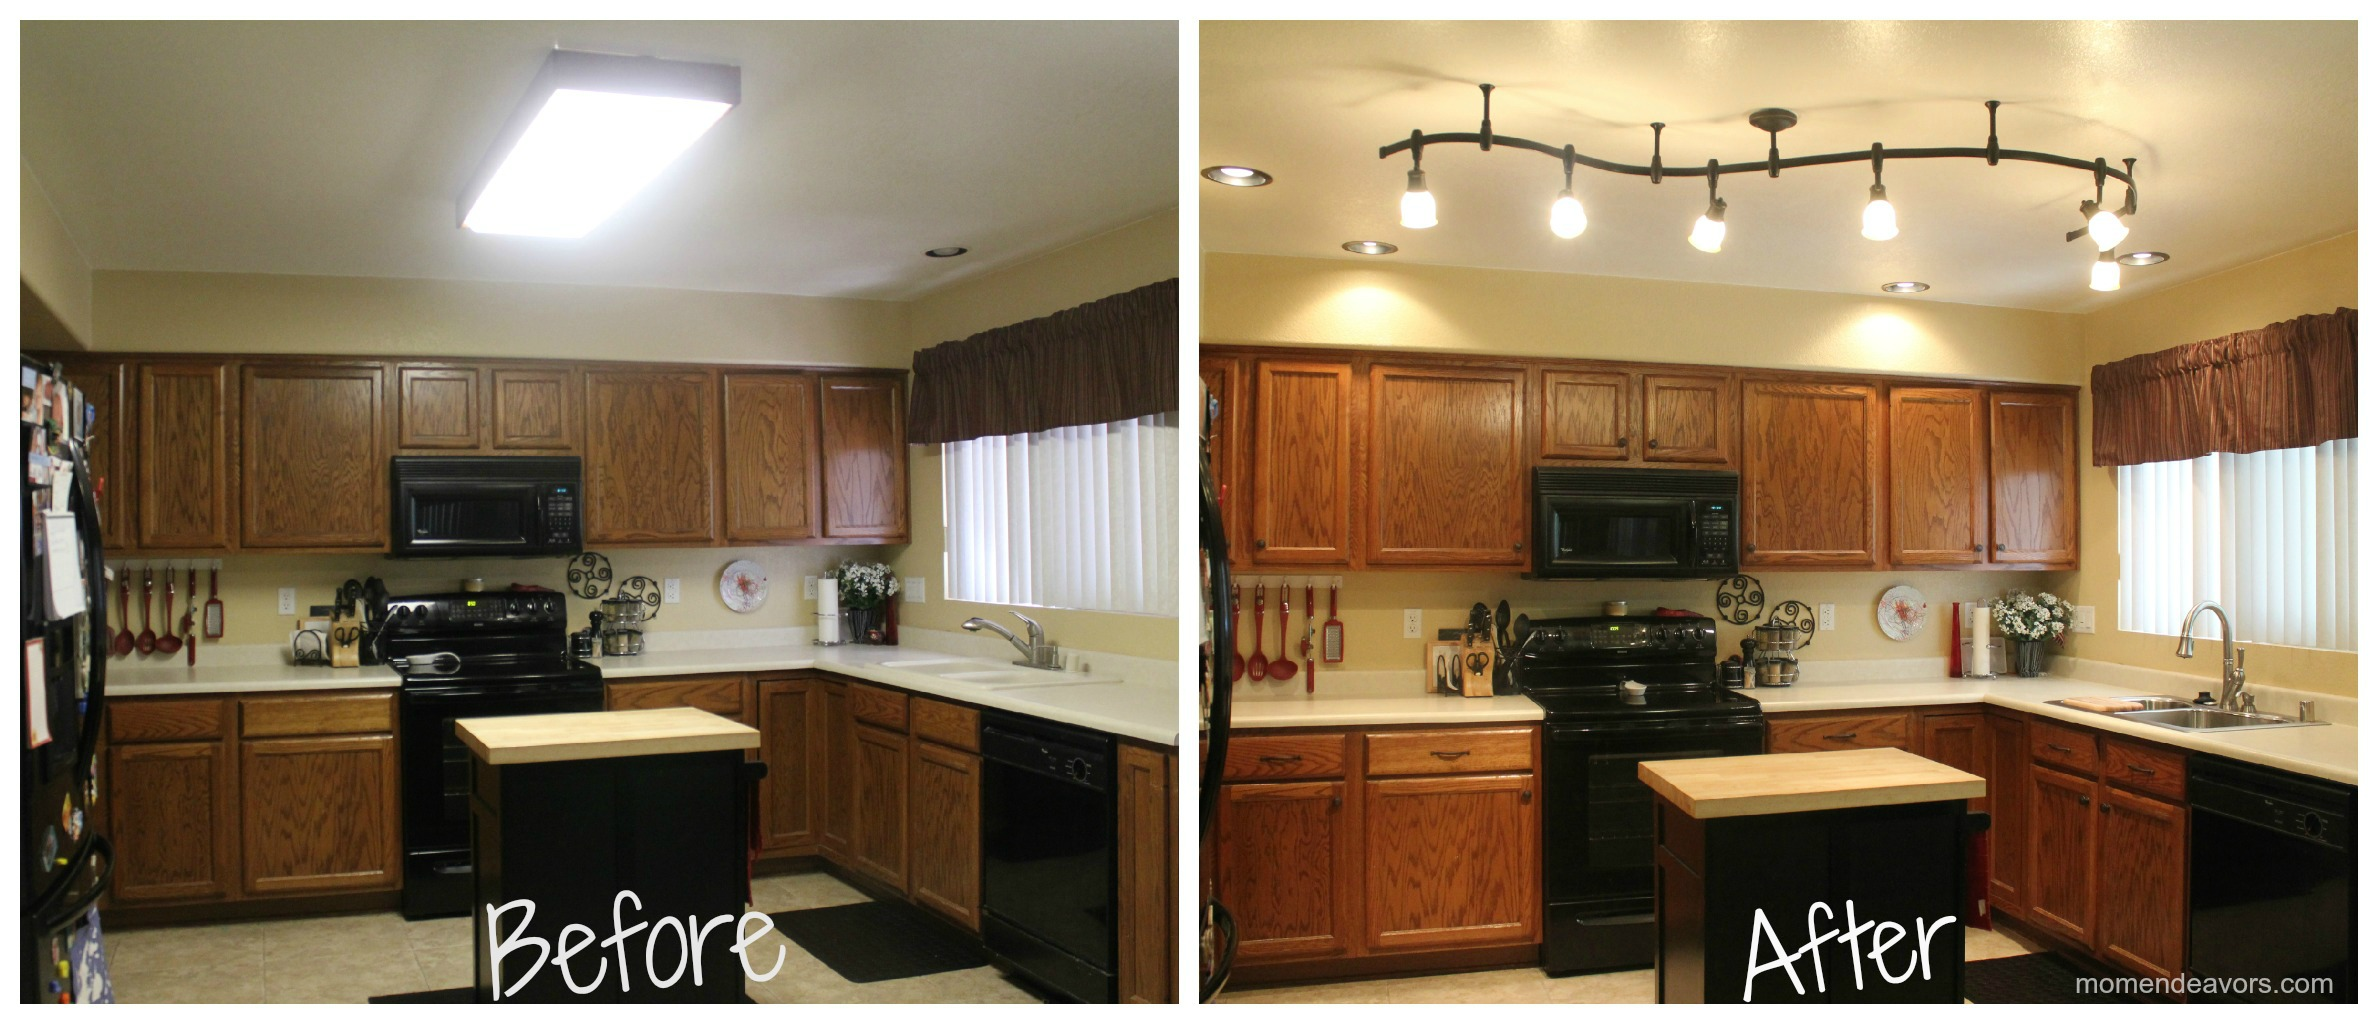 remodel a kitchen blue cabinets for sale mini new lighting makes world of difference it